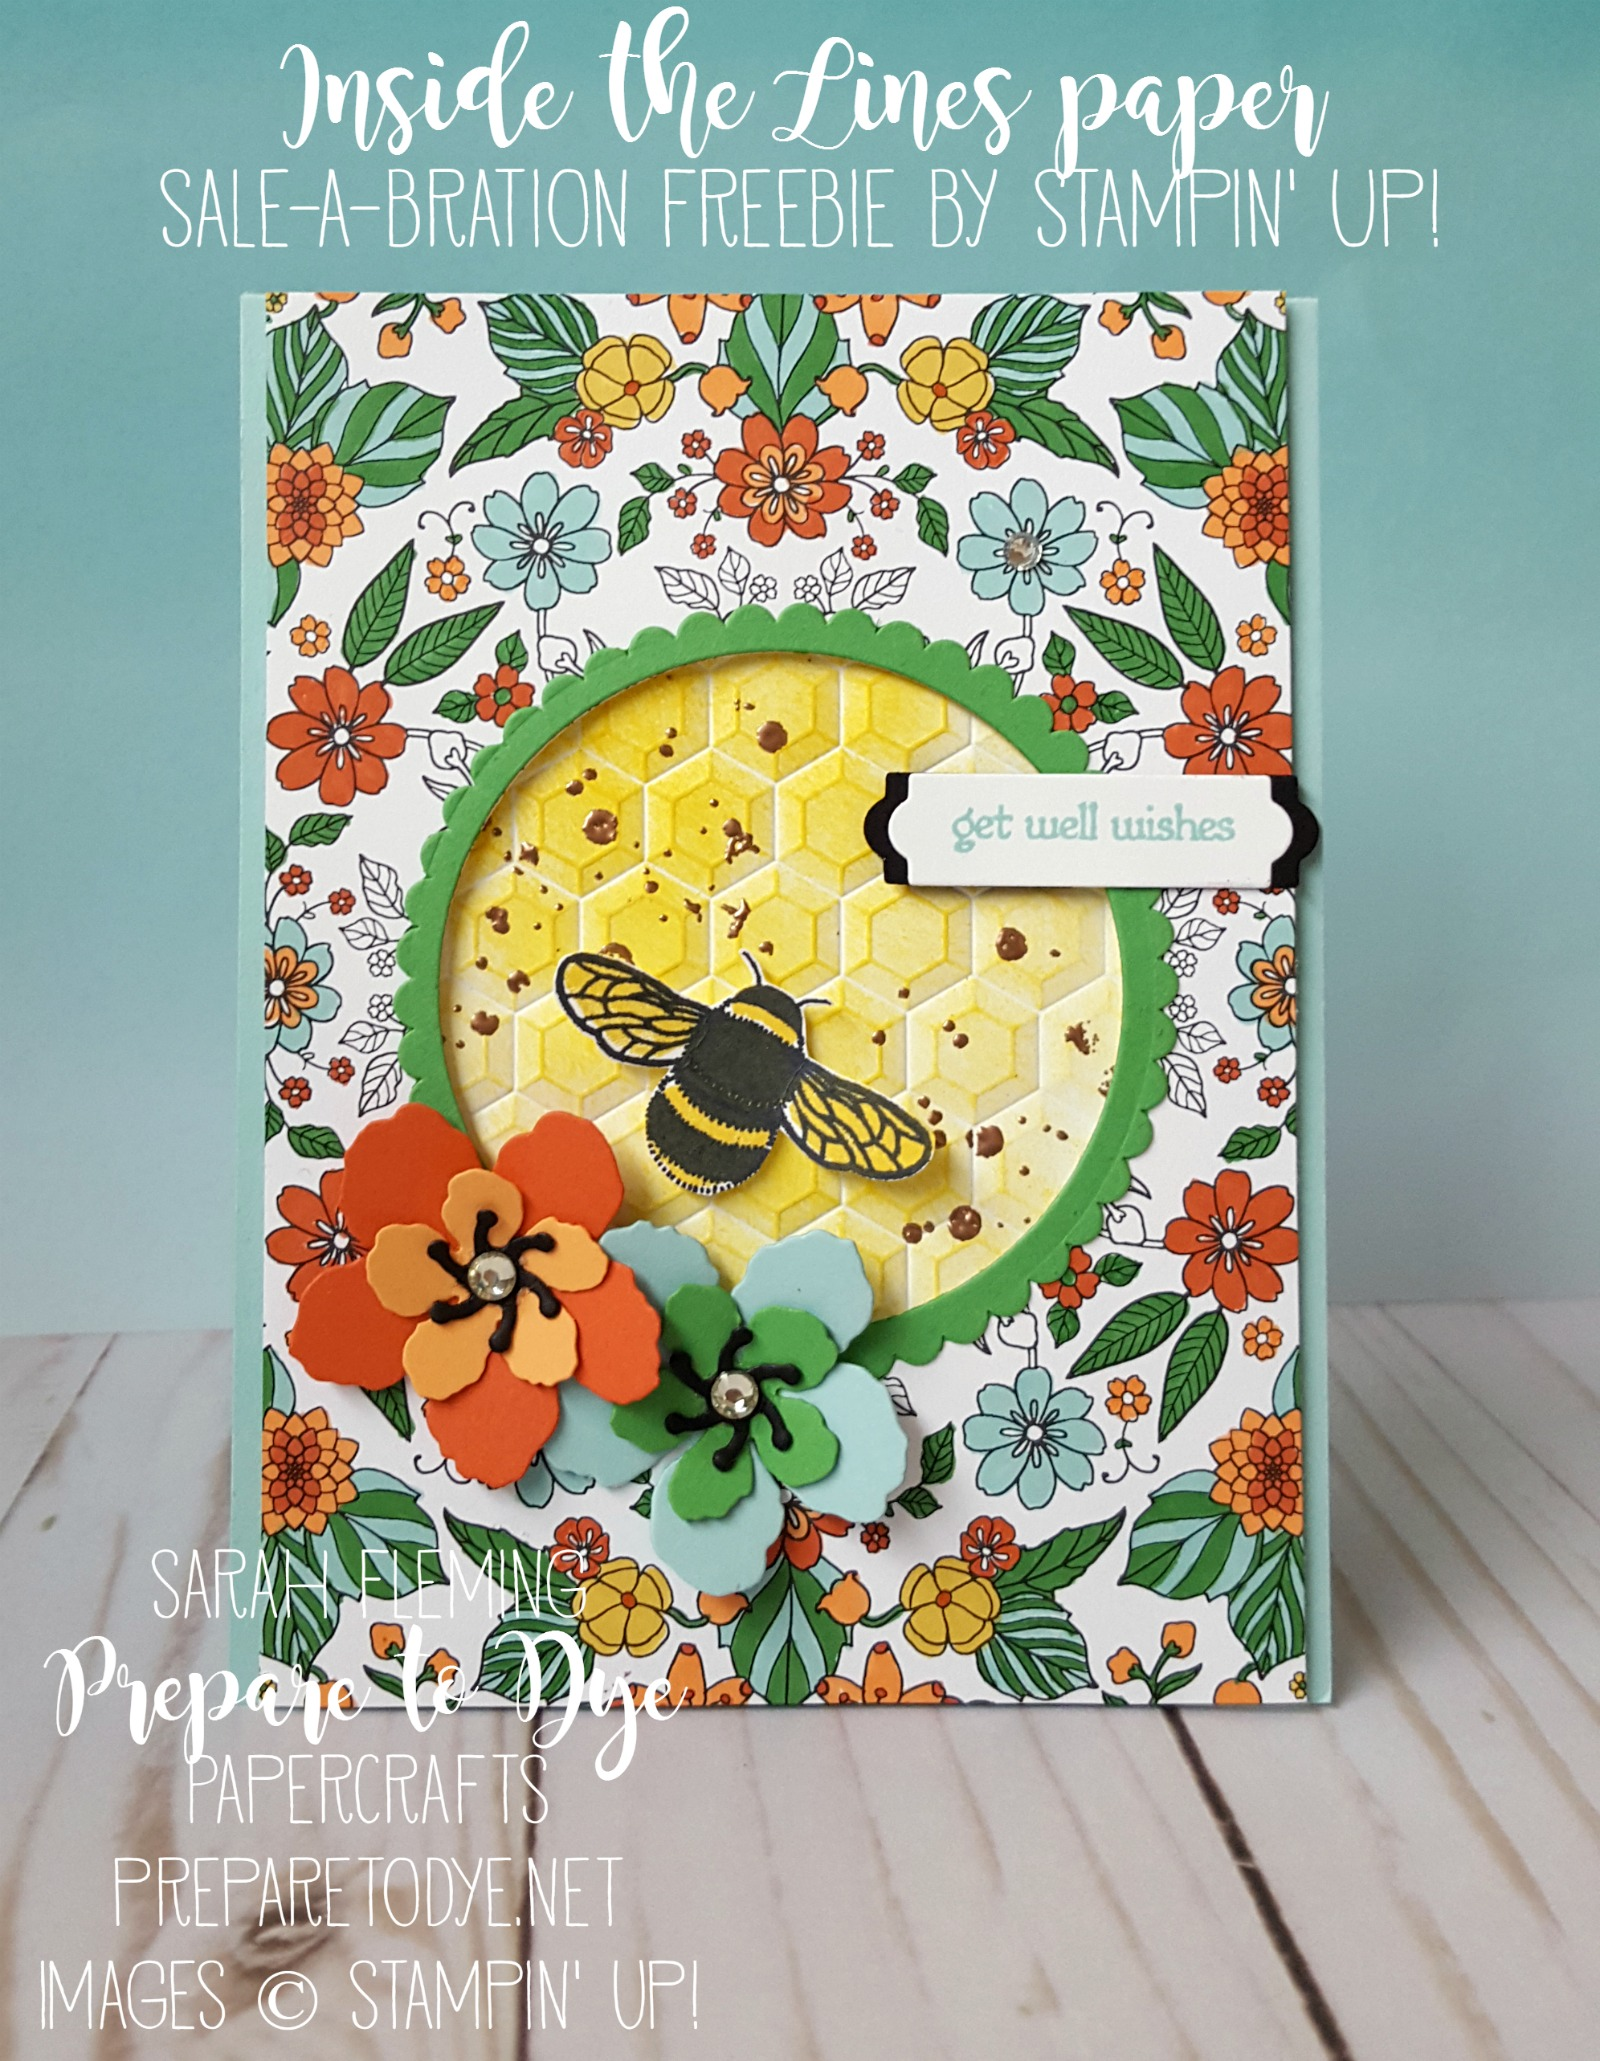 Stampin' Up! Inside the Lines designer series paper is only available until the end of March! - Botanical Builders & Dragonfly Dreams & Hexagons dynamic embossing folder - Sarah Fleming - Prepare to Dye Papercrafts